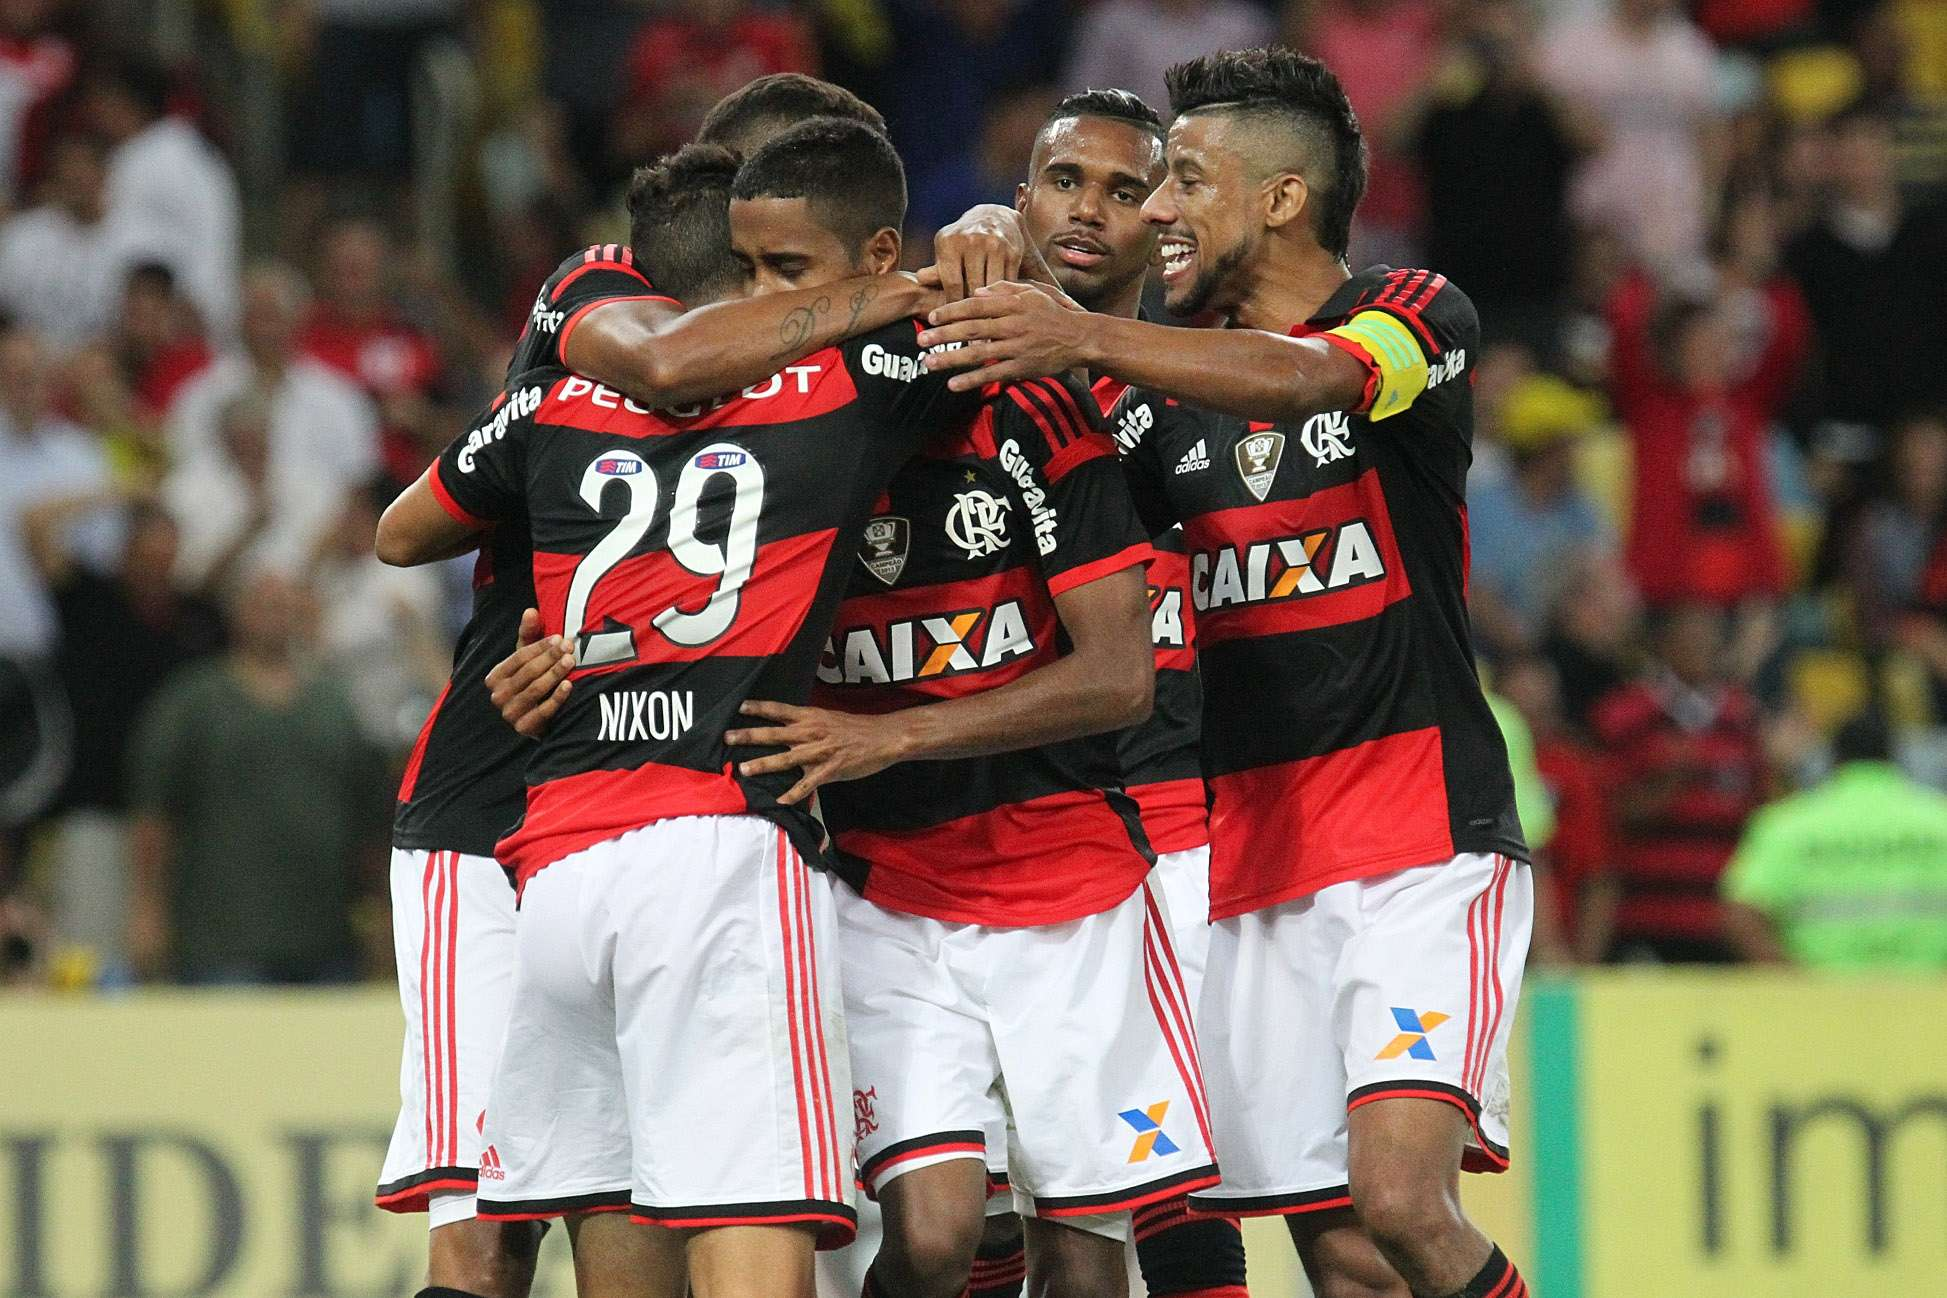 Jogadores comemoram mais uma vitória do Flamengo na Série A Foto: Gilvan de Souza/Flamengo/Divulgação